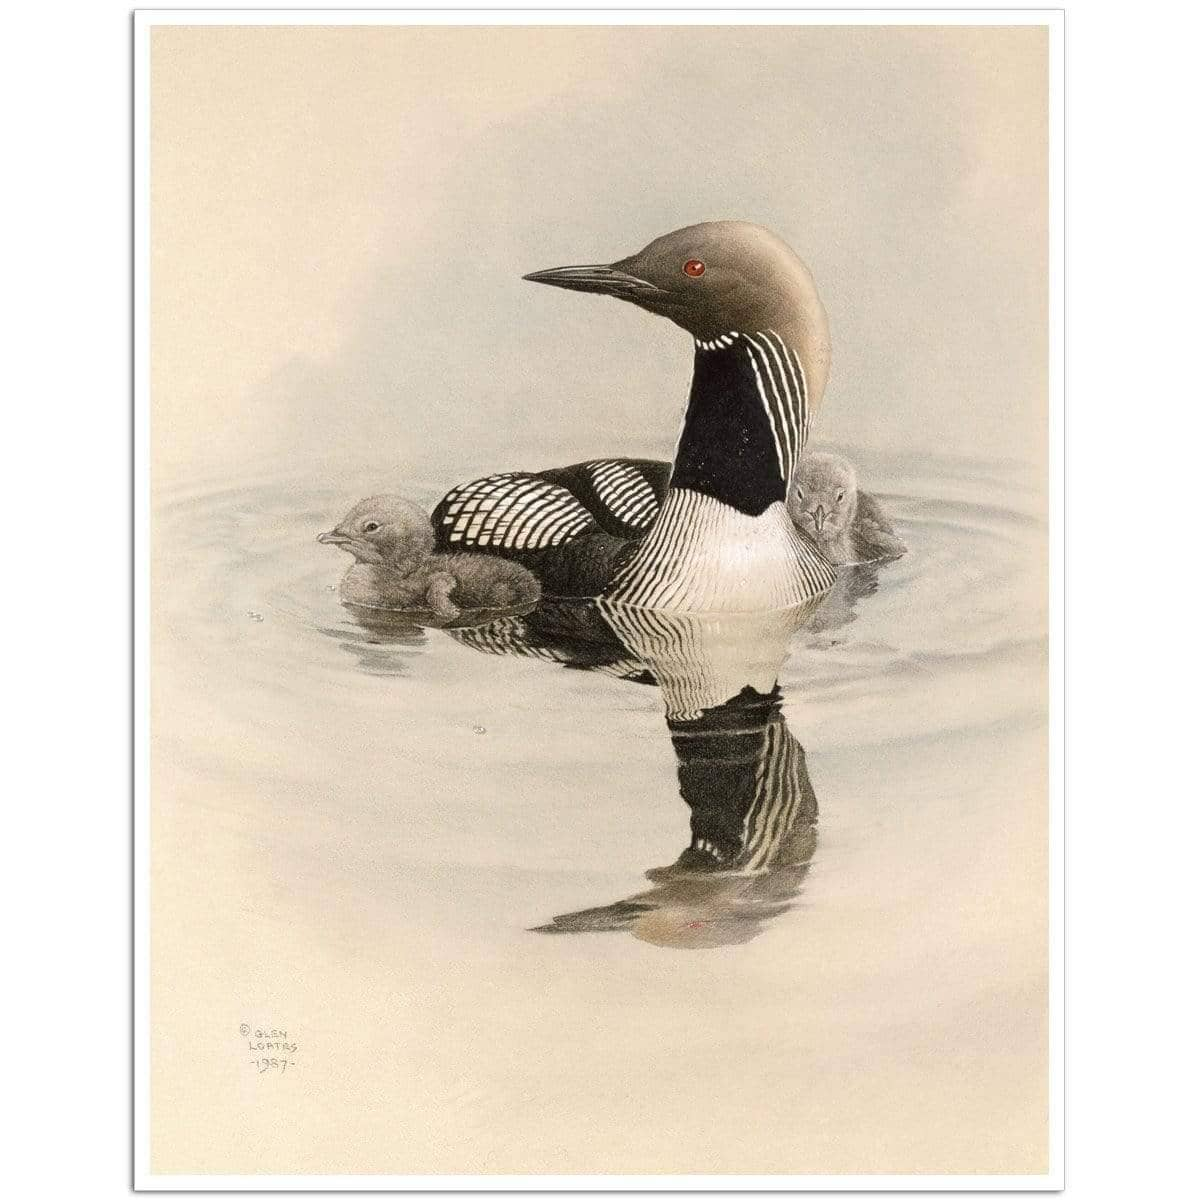 Arctic Loon With Young - Art Print by Glen Loates from the Glen Loates Store